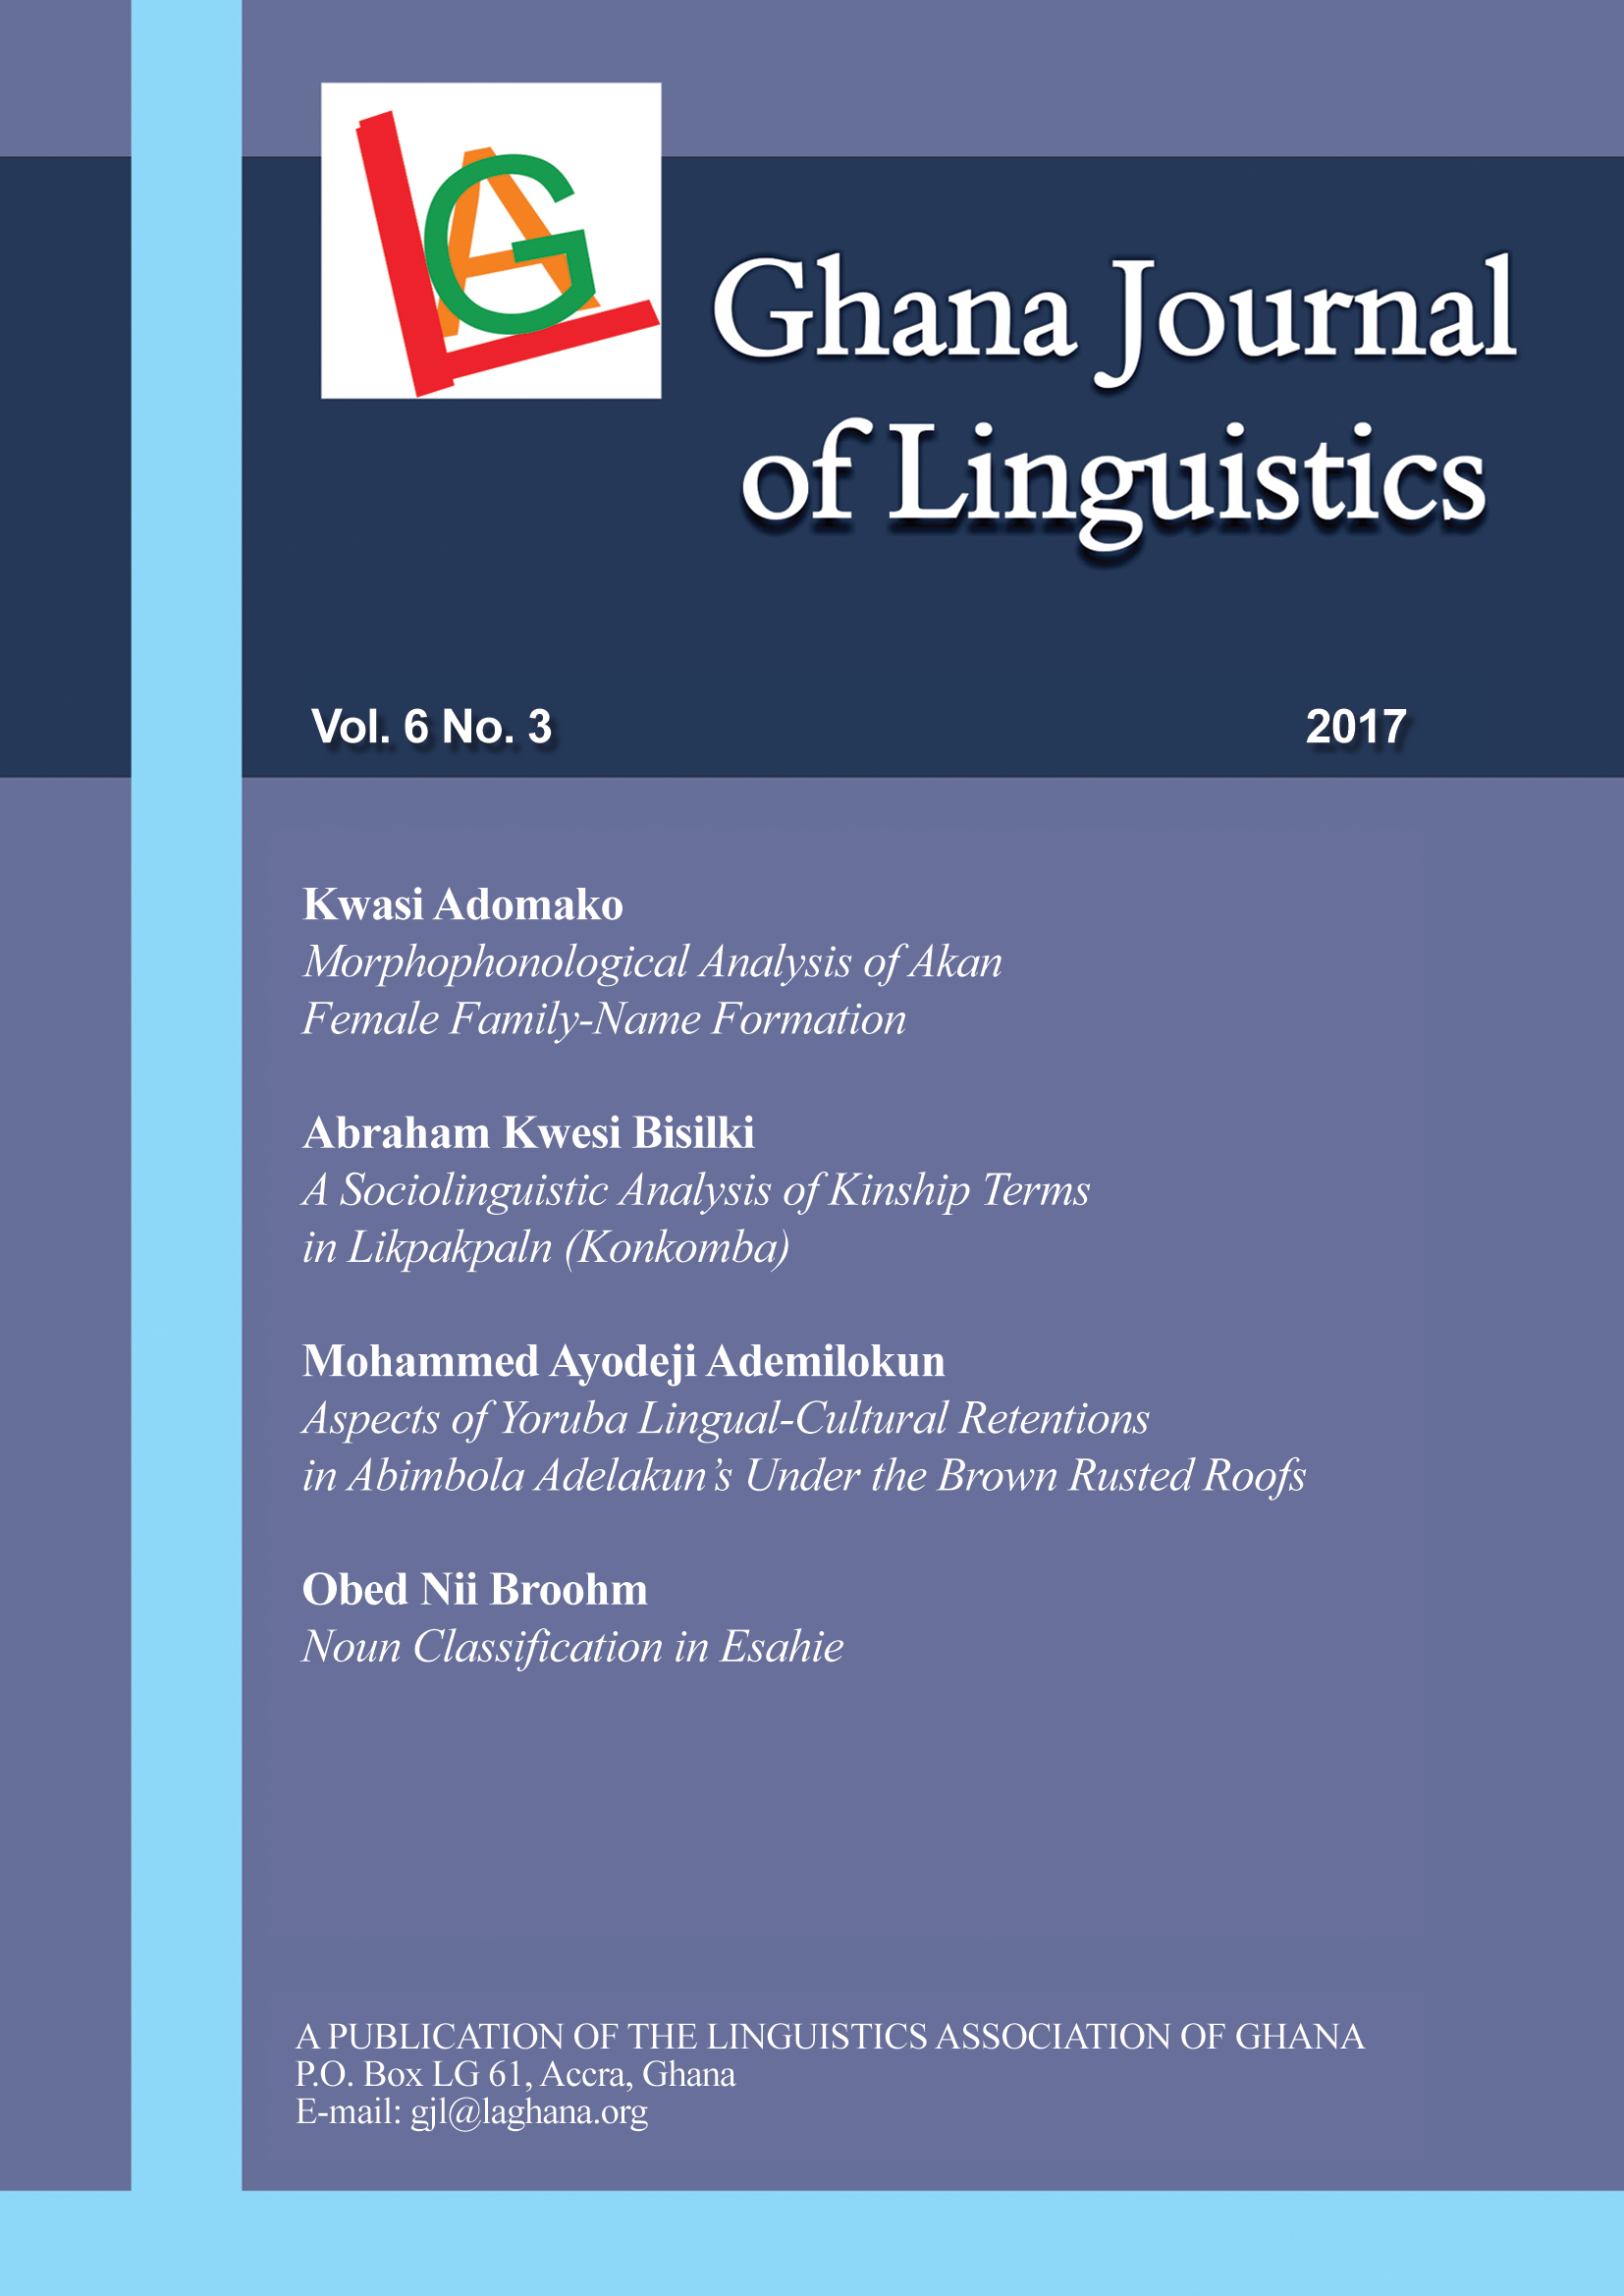 Ghana Journal of Linguistics 6.3 (2017)